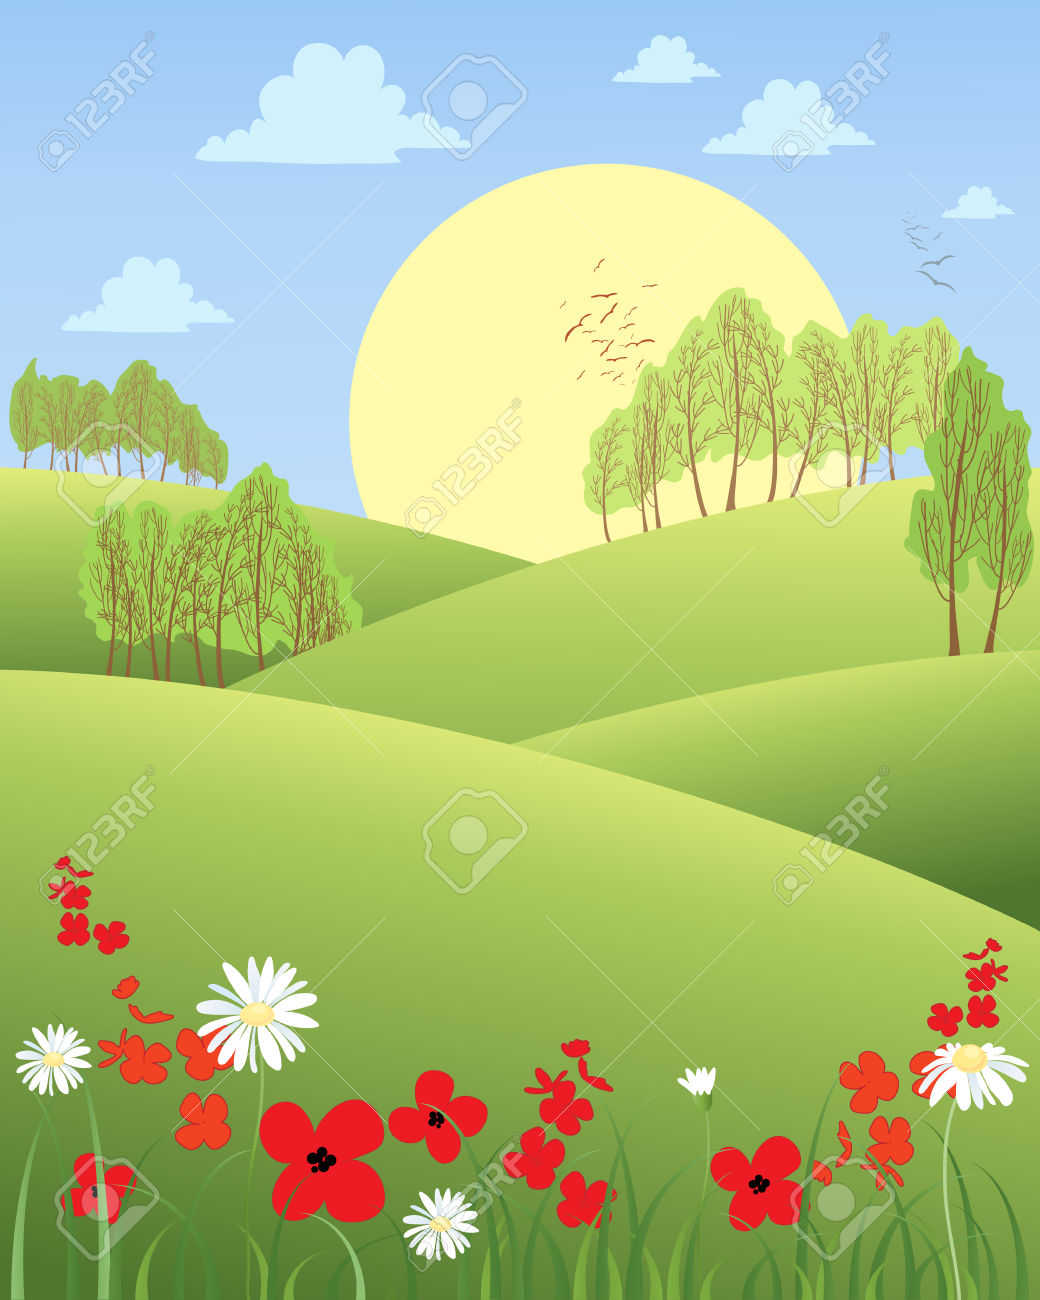 Rolling hills clipart Clipground